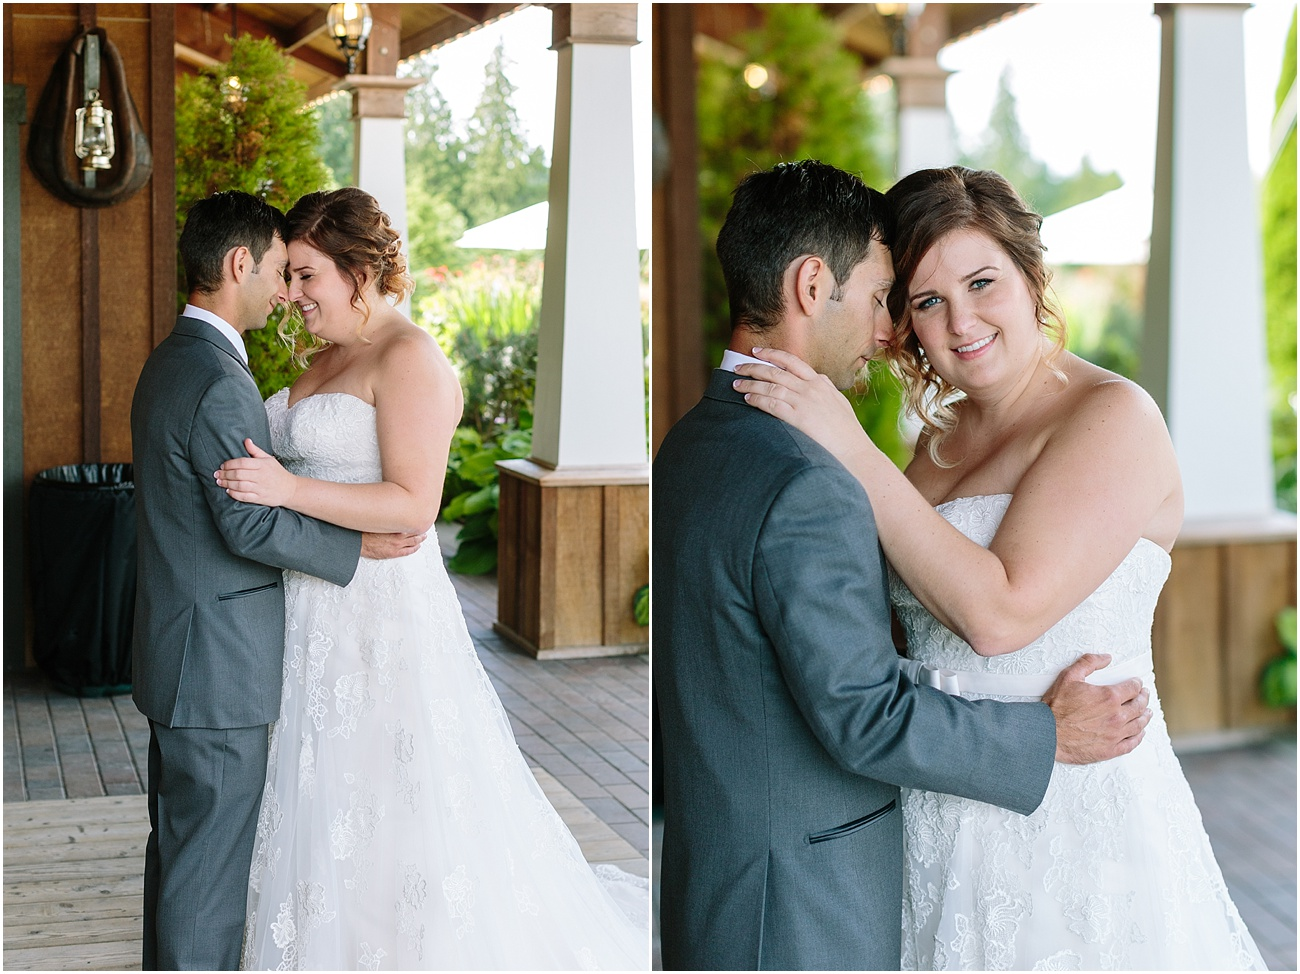 Tauzin_Wedding_Tazer_Valley_Farm_Stanwood_Washington__0025